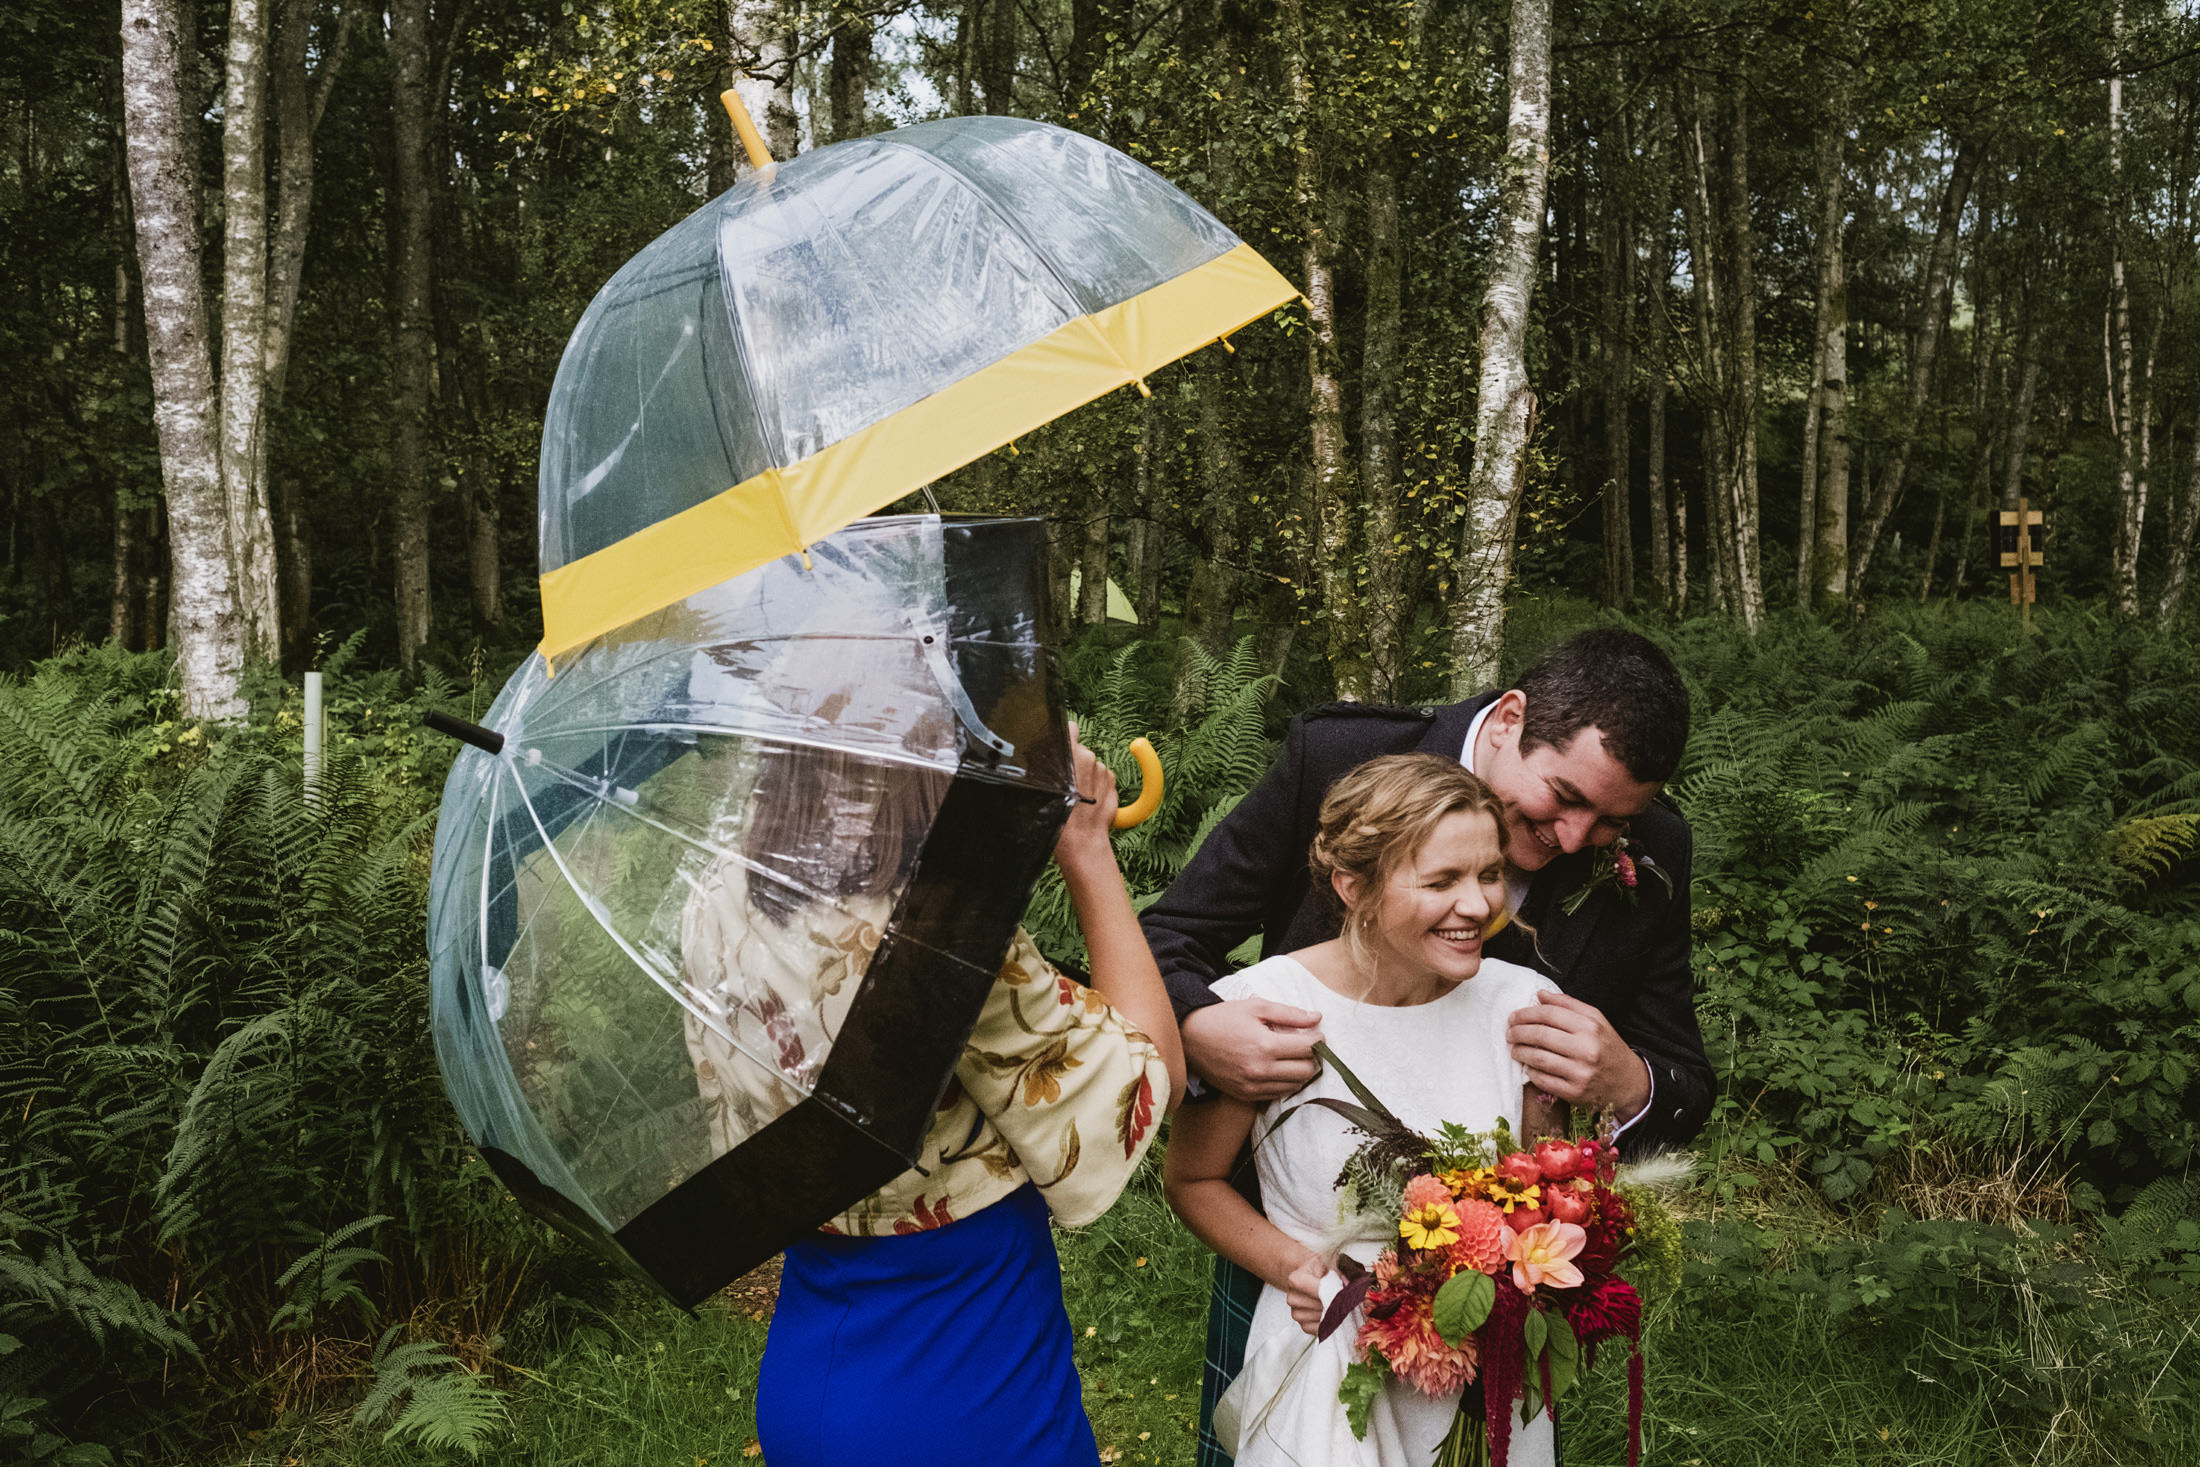 Comrie Croft Wedding Photography, bride and groom waiting, wedding guest helping with umbrellas